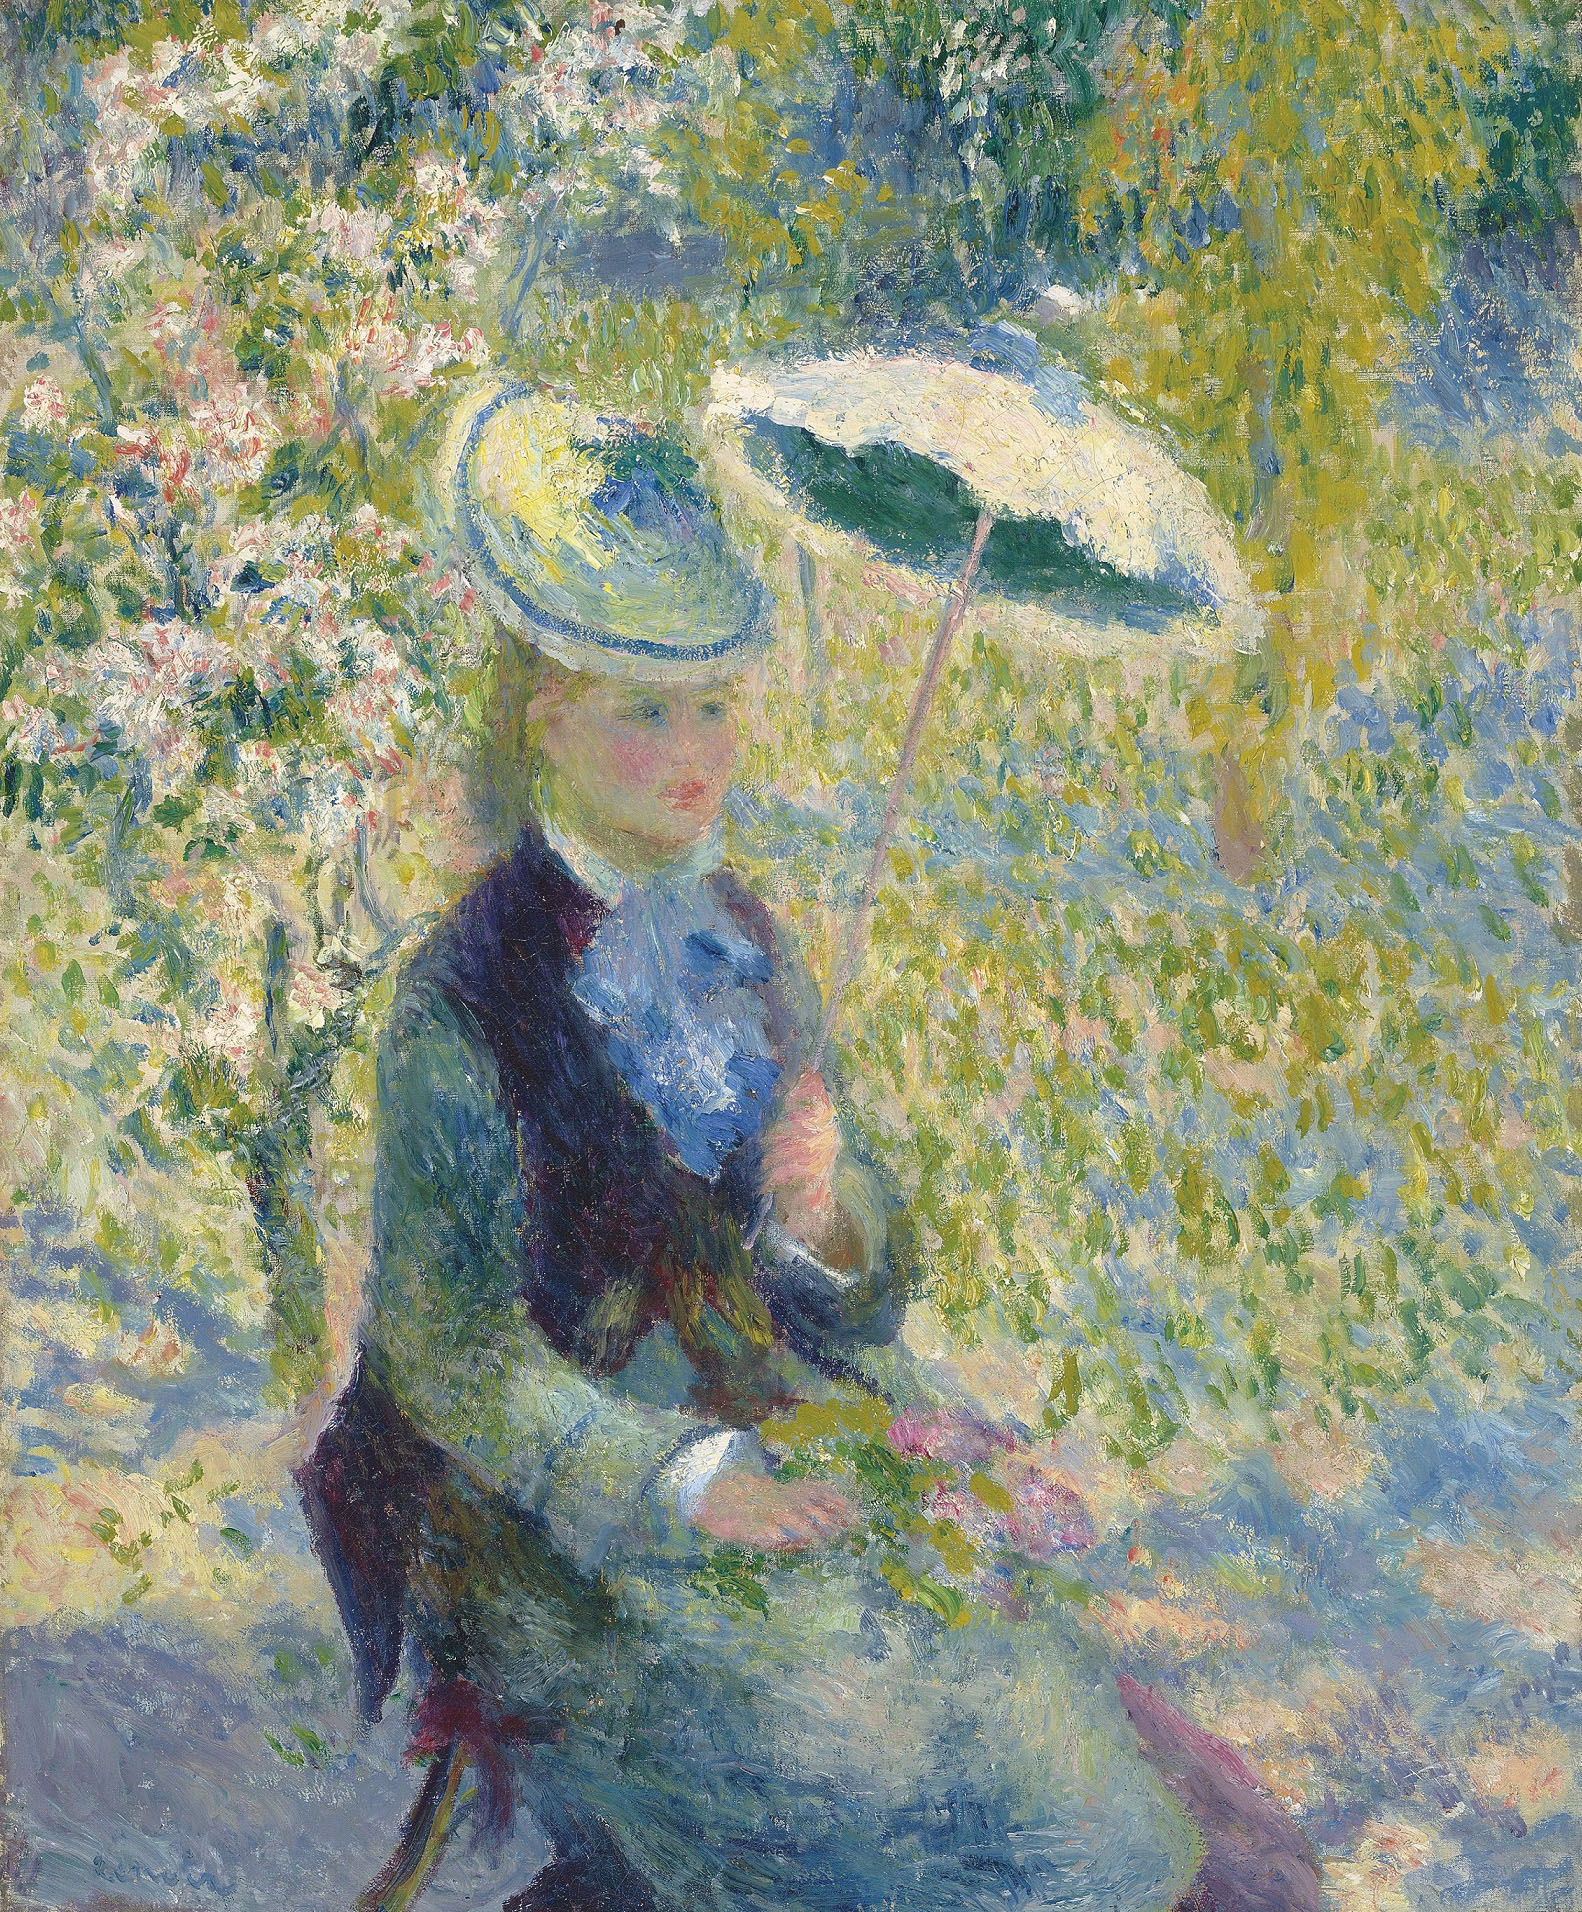 impressionism monet and renoir The man who made monet: how impressionism was saved from obscurity how did the impressionist painters, once attacked by critics monet, renoir, sisley.